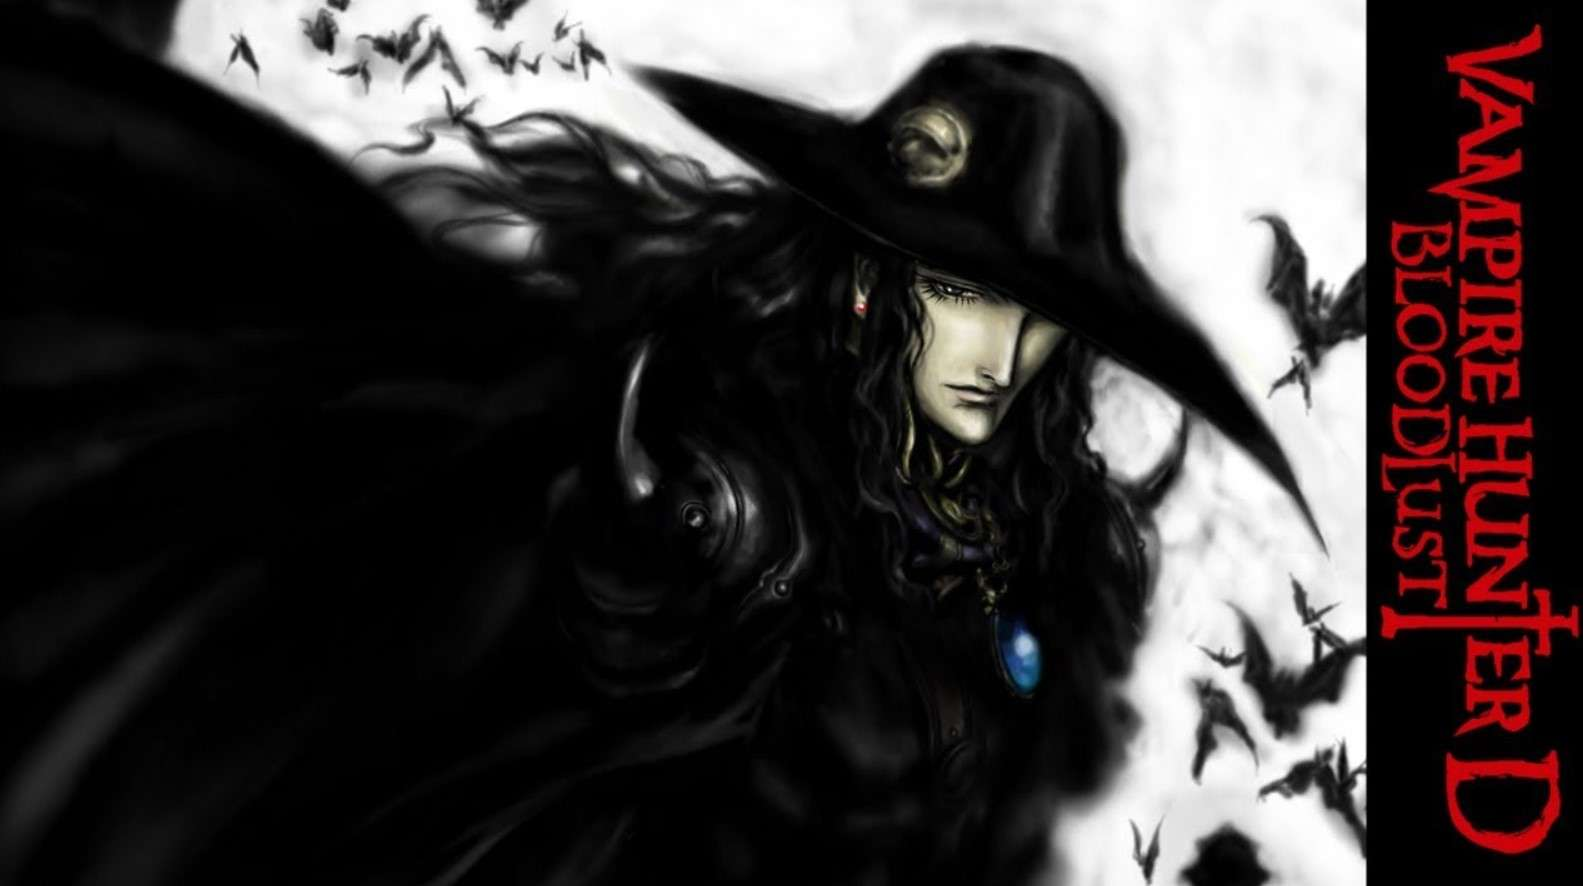 vampire hunter d: bloodlust- best anime movies to watch